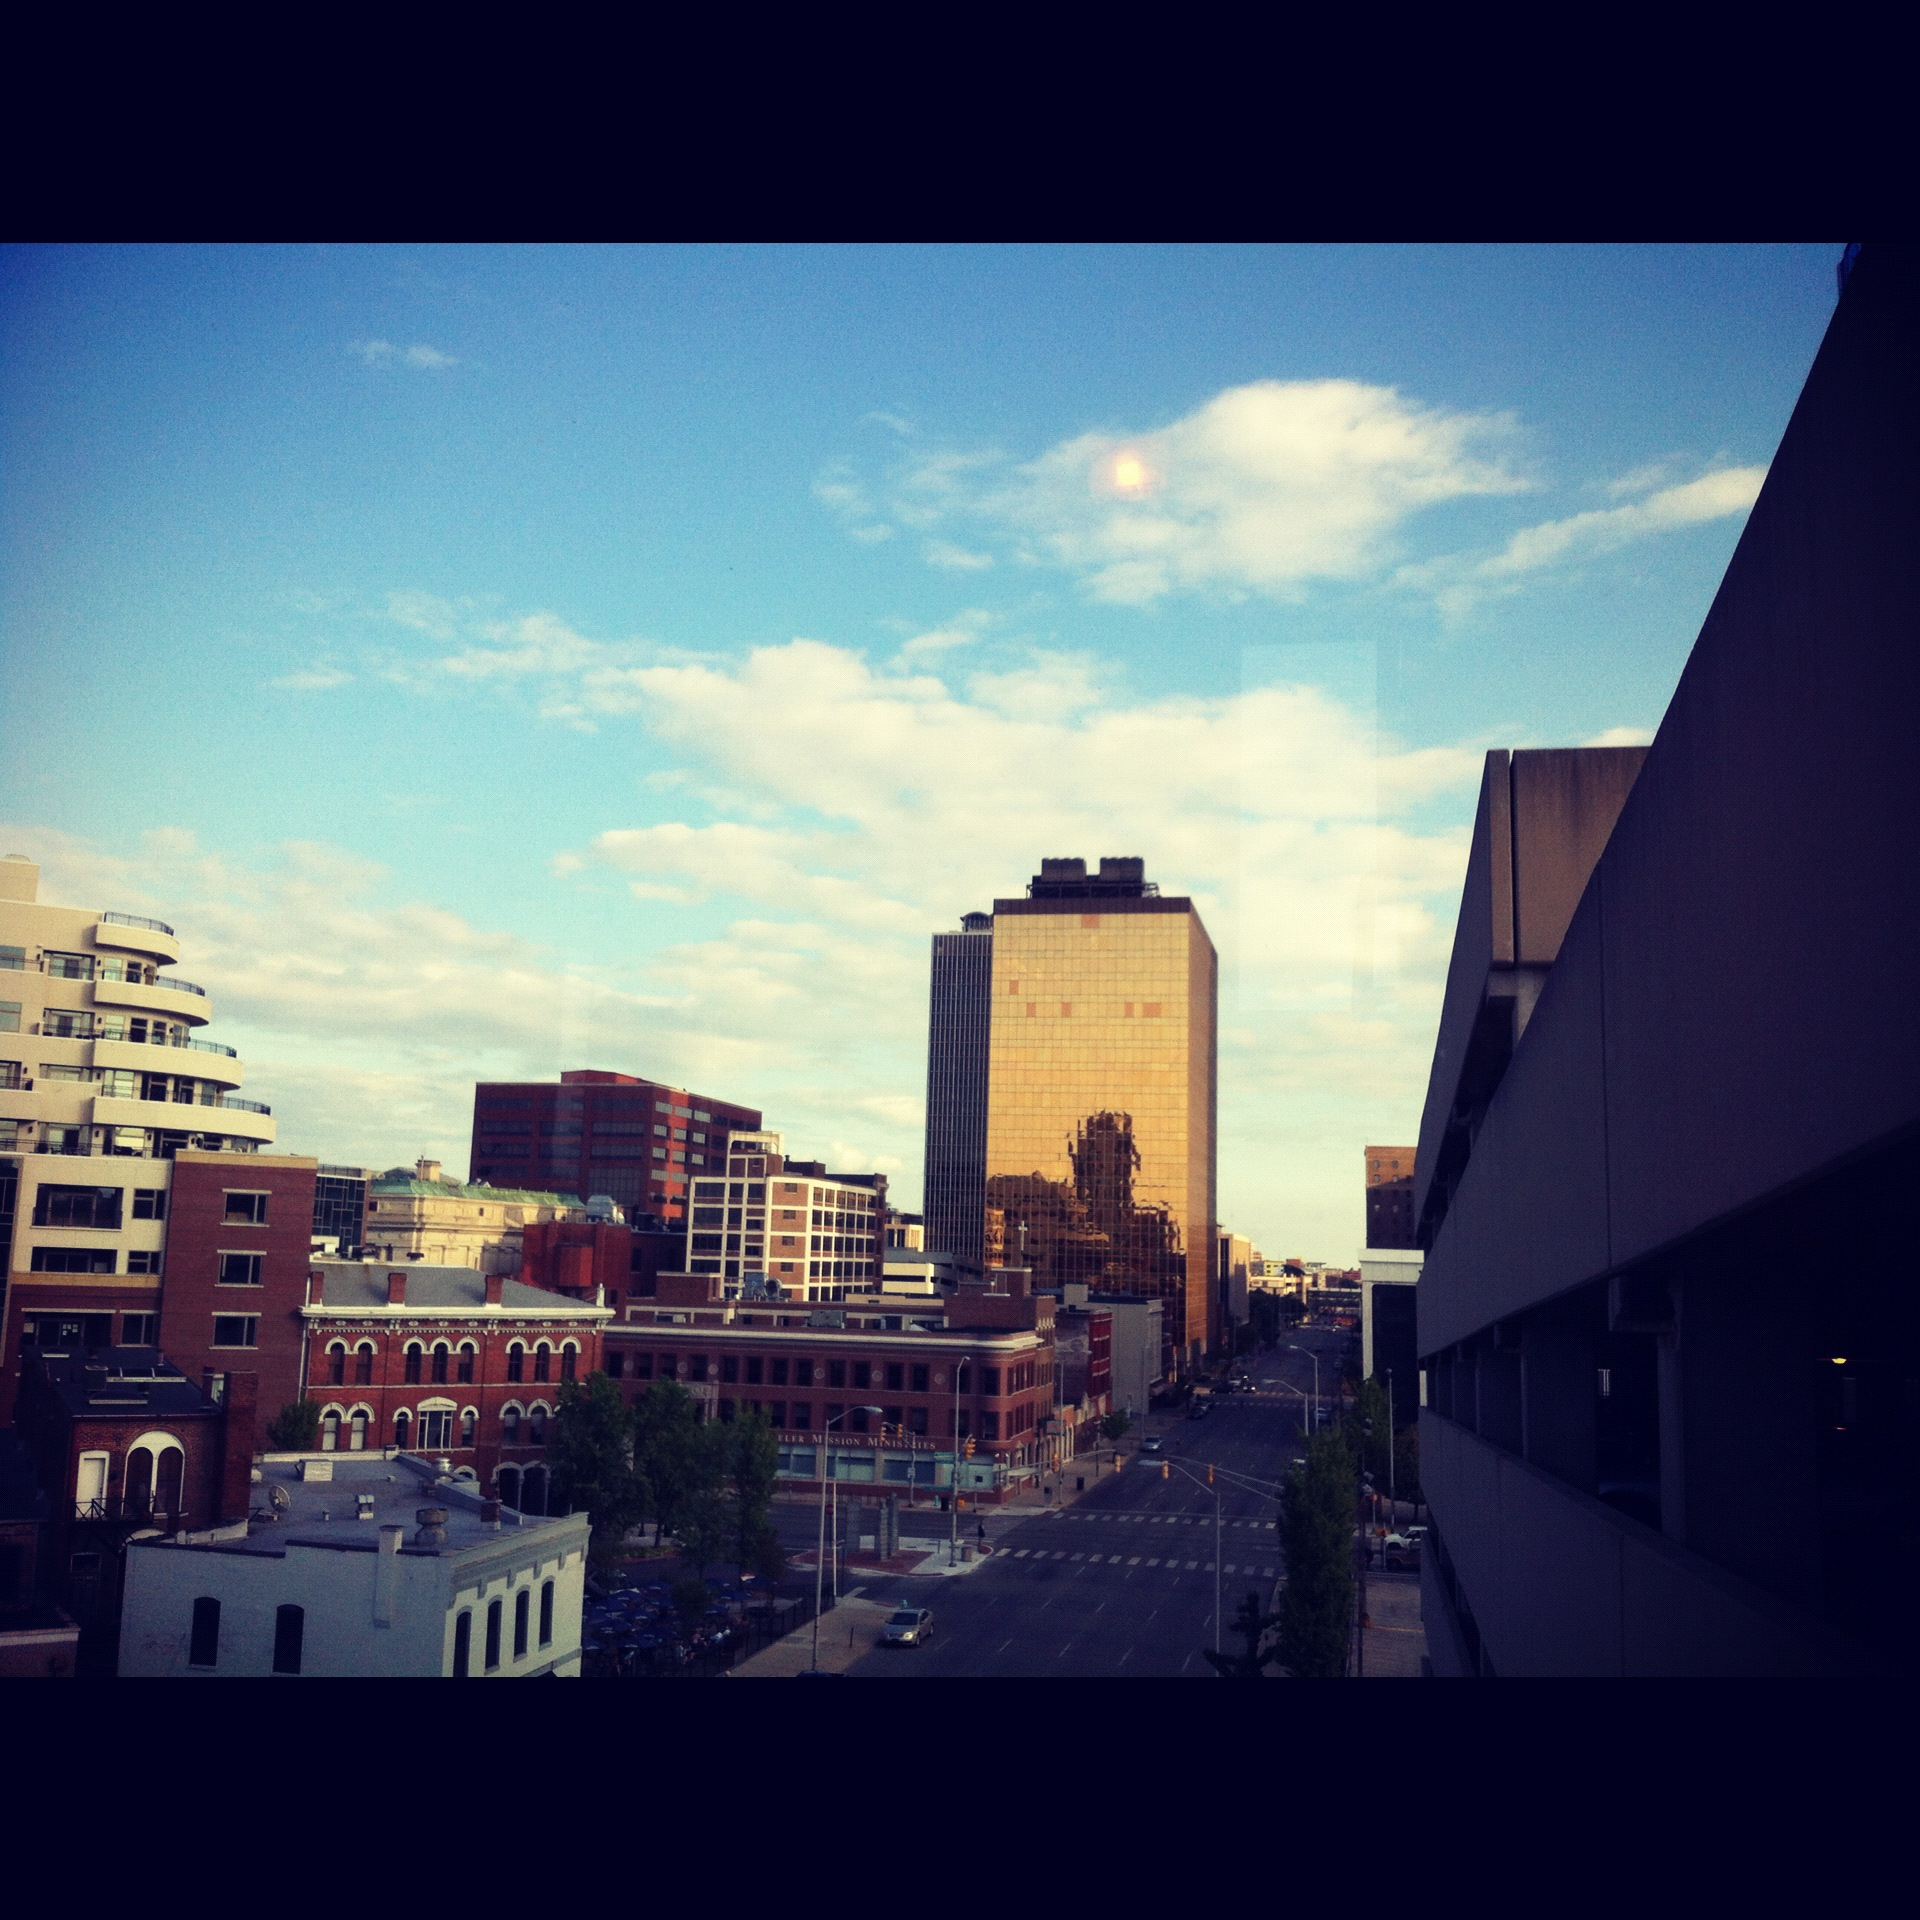 Room With a View: Vermont and Delaware